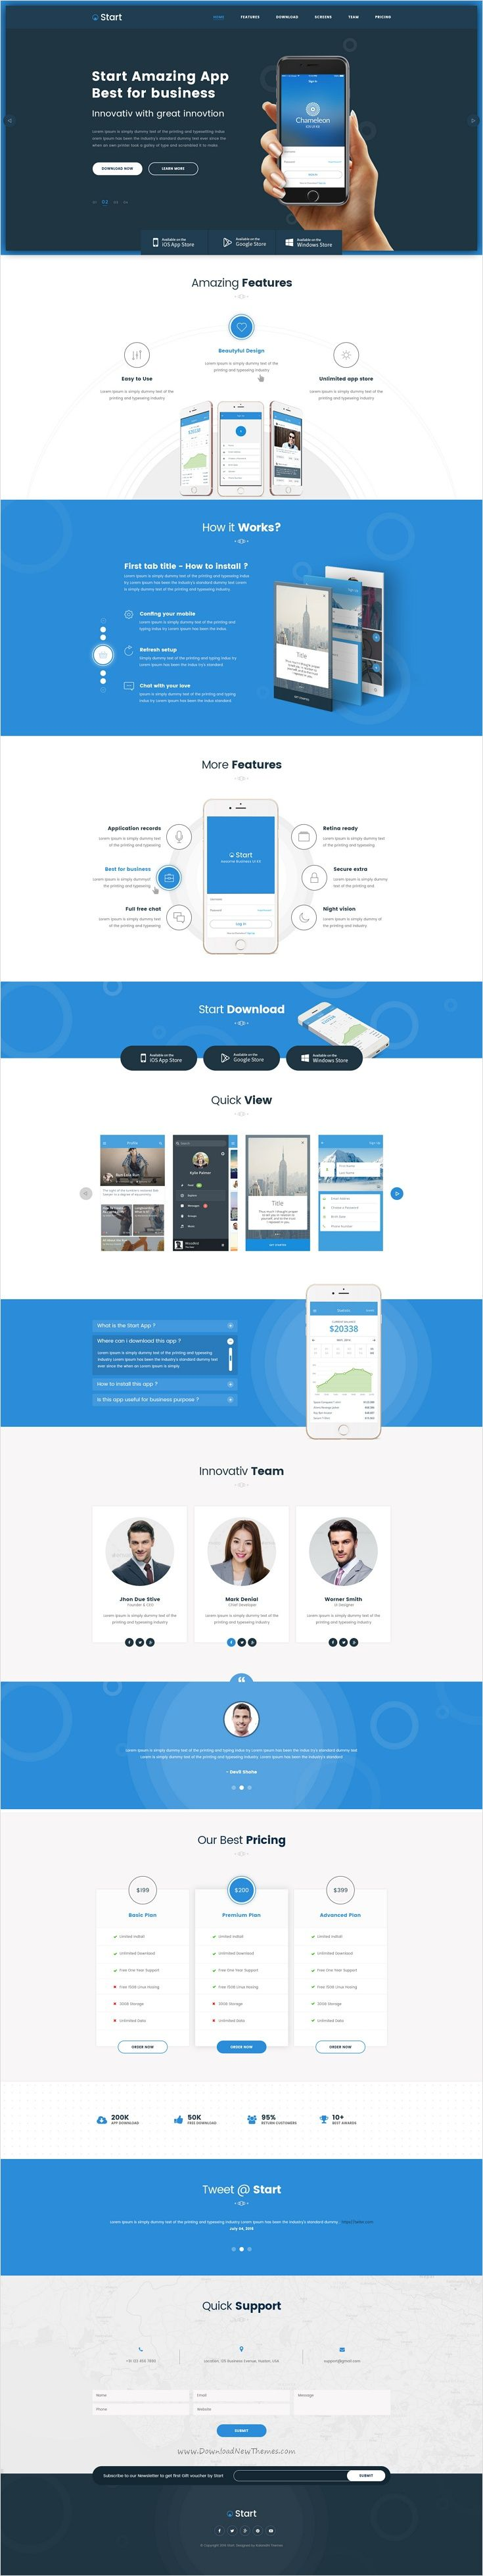 Start - App Landing Page HTML Template   Startups, Template and App